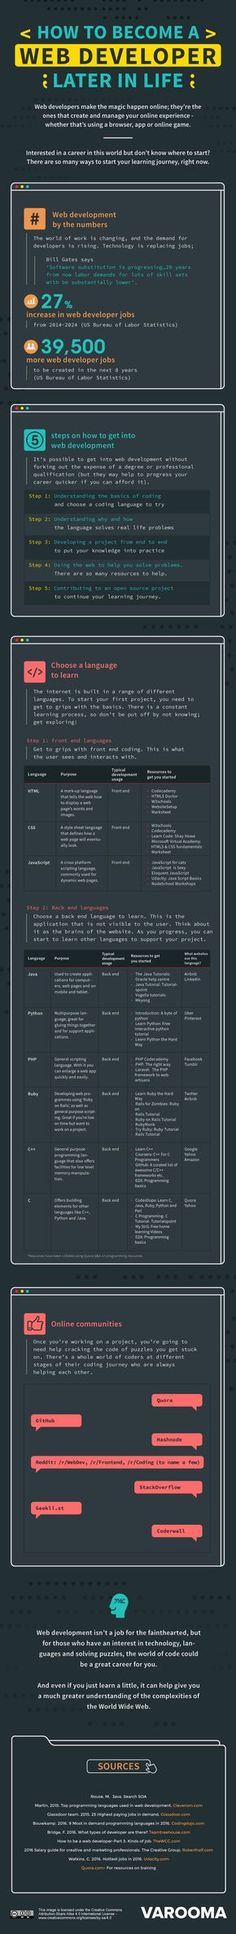 How to Become a Web Developer Later in Life #Infographic #HowTo #WebDeveloper